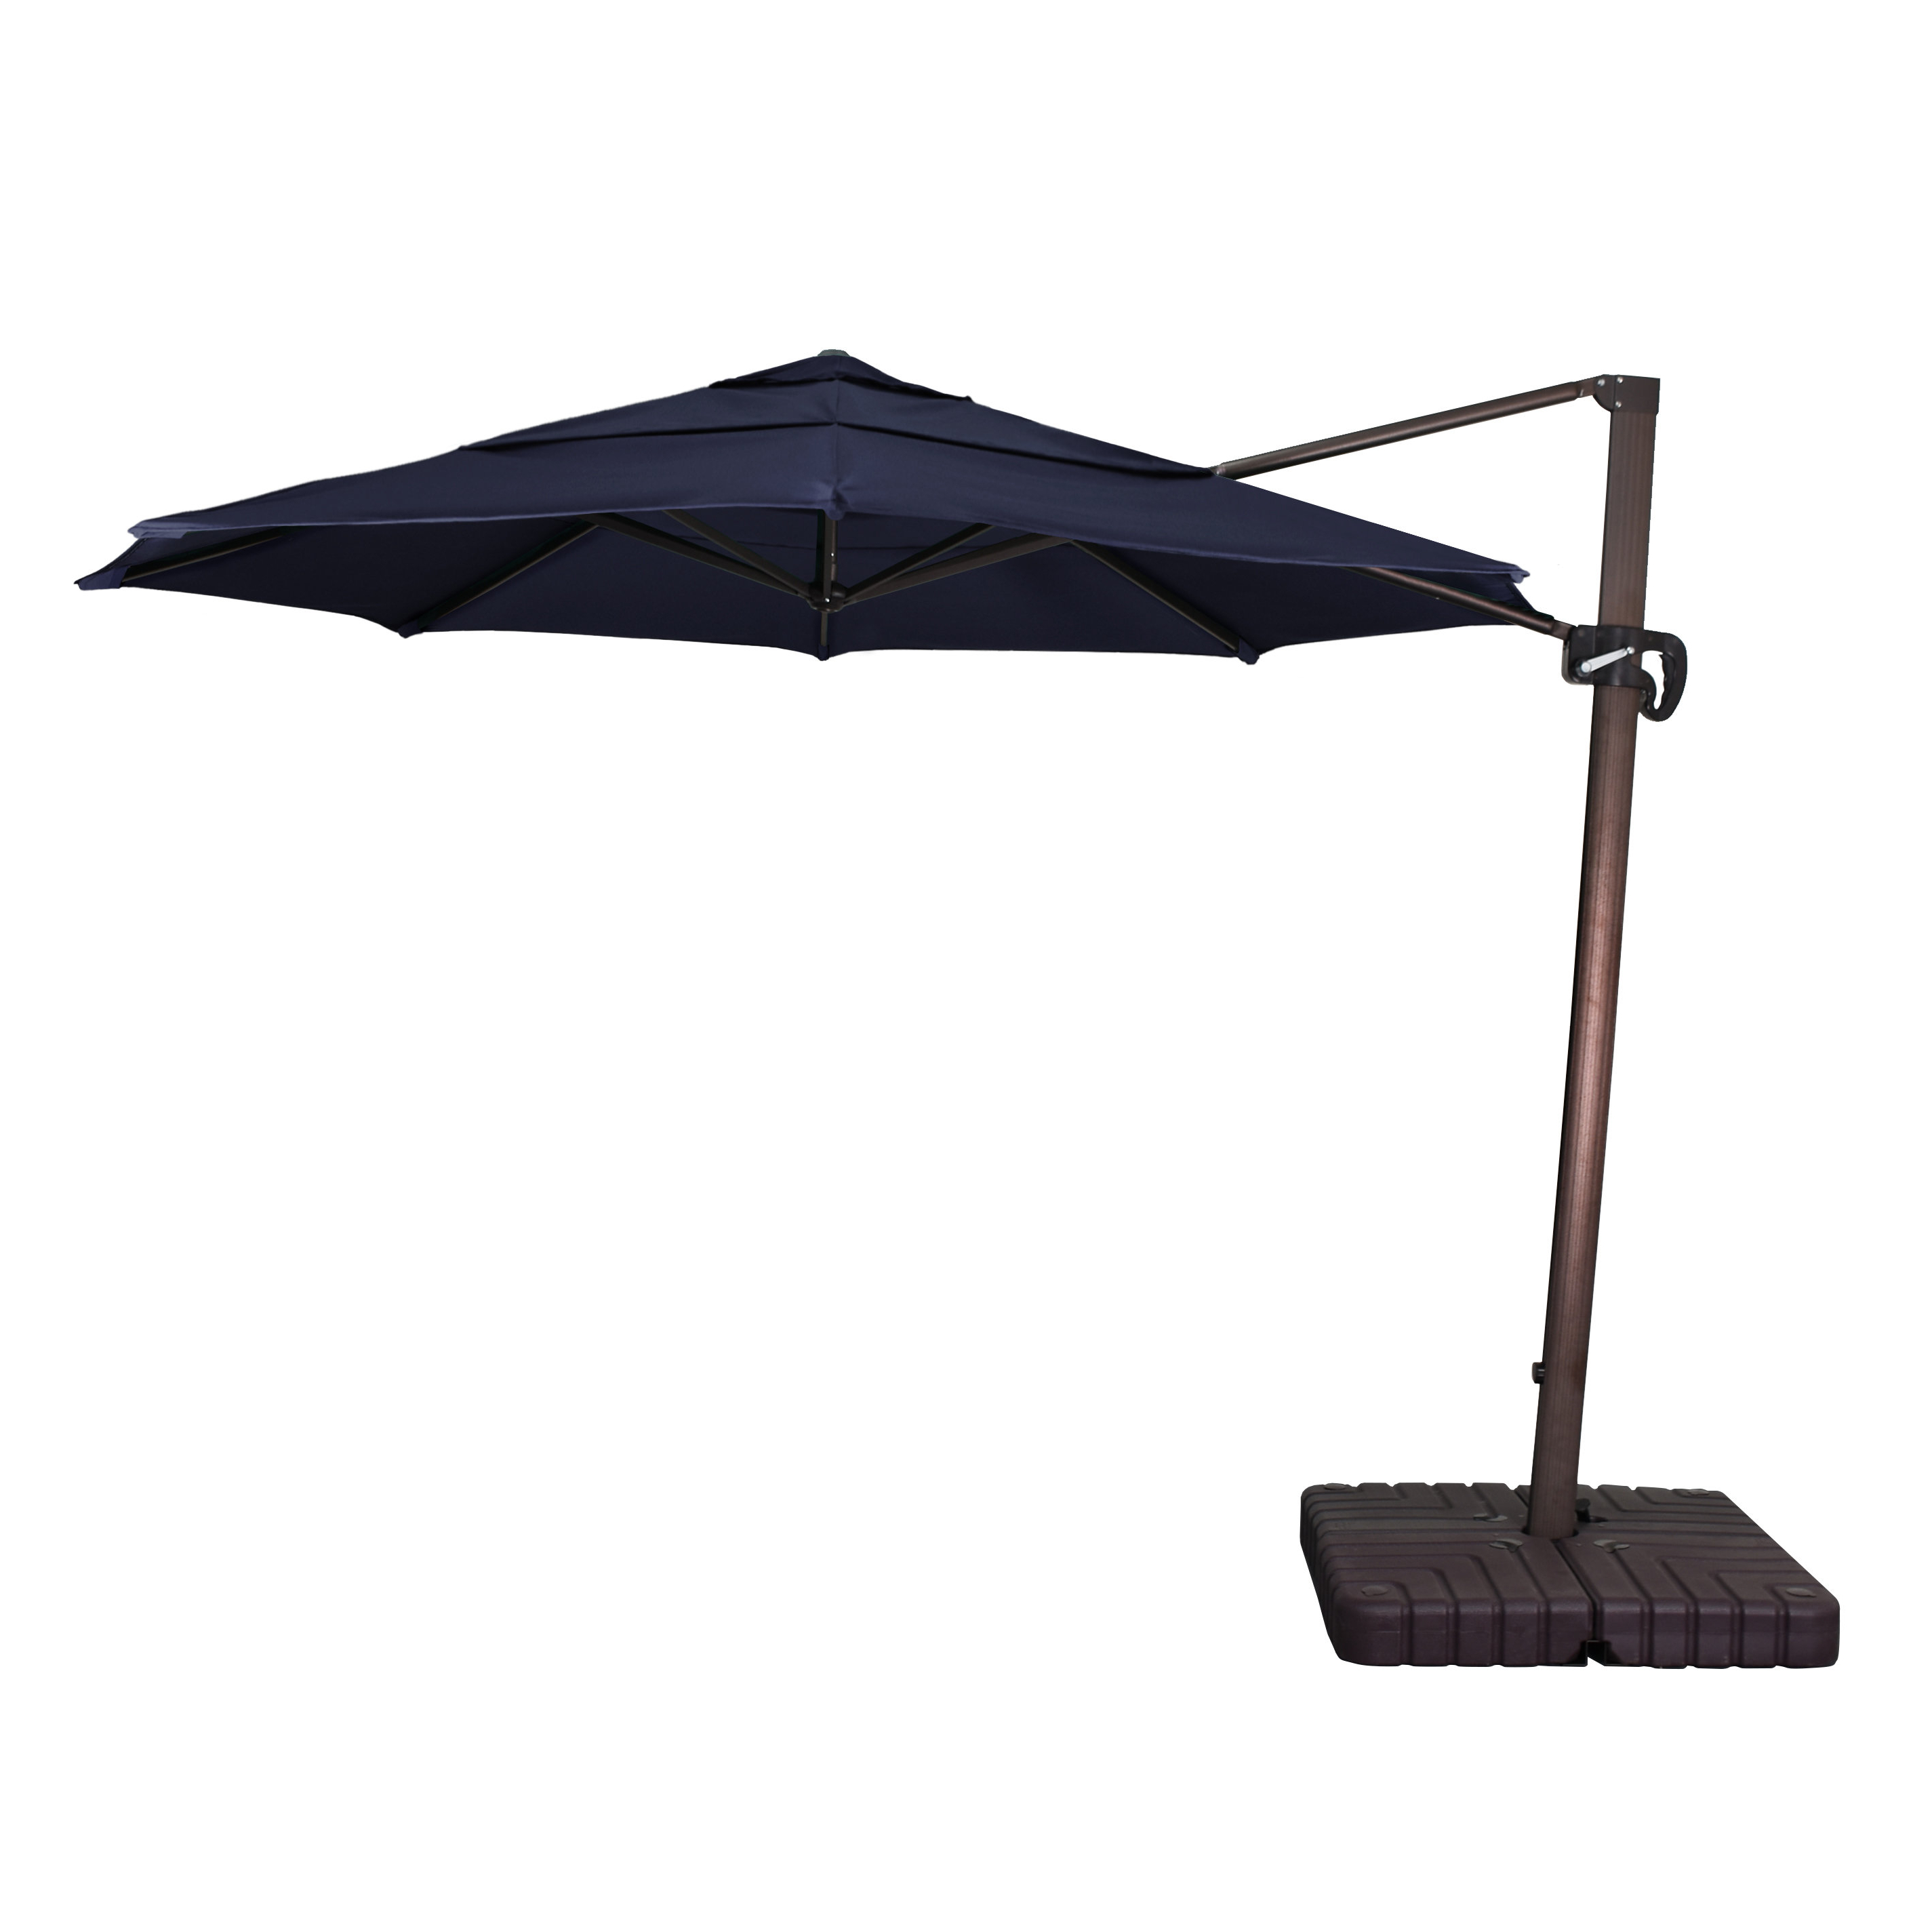 Well Known Gribble 3Cantilever Umbrellas Pertaining To Carlisle 11' Cantilever Sunbrella Umbrella (View 19 of 20)